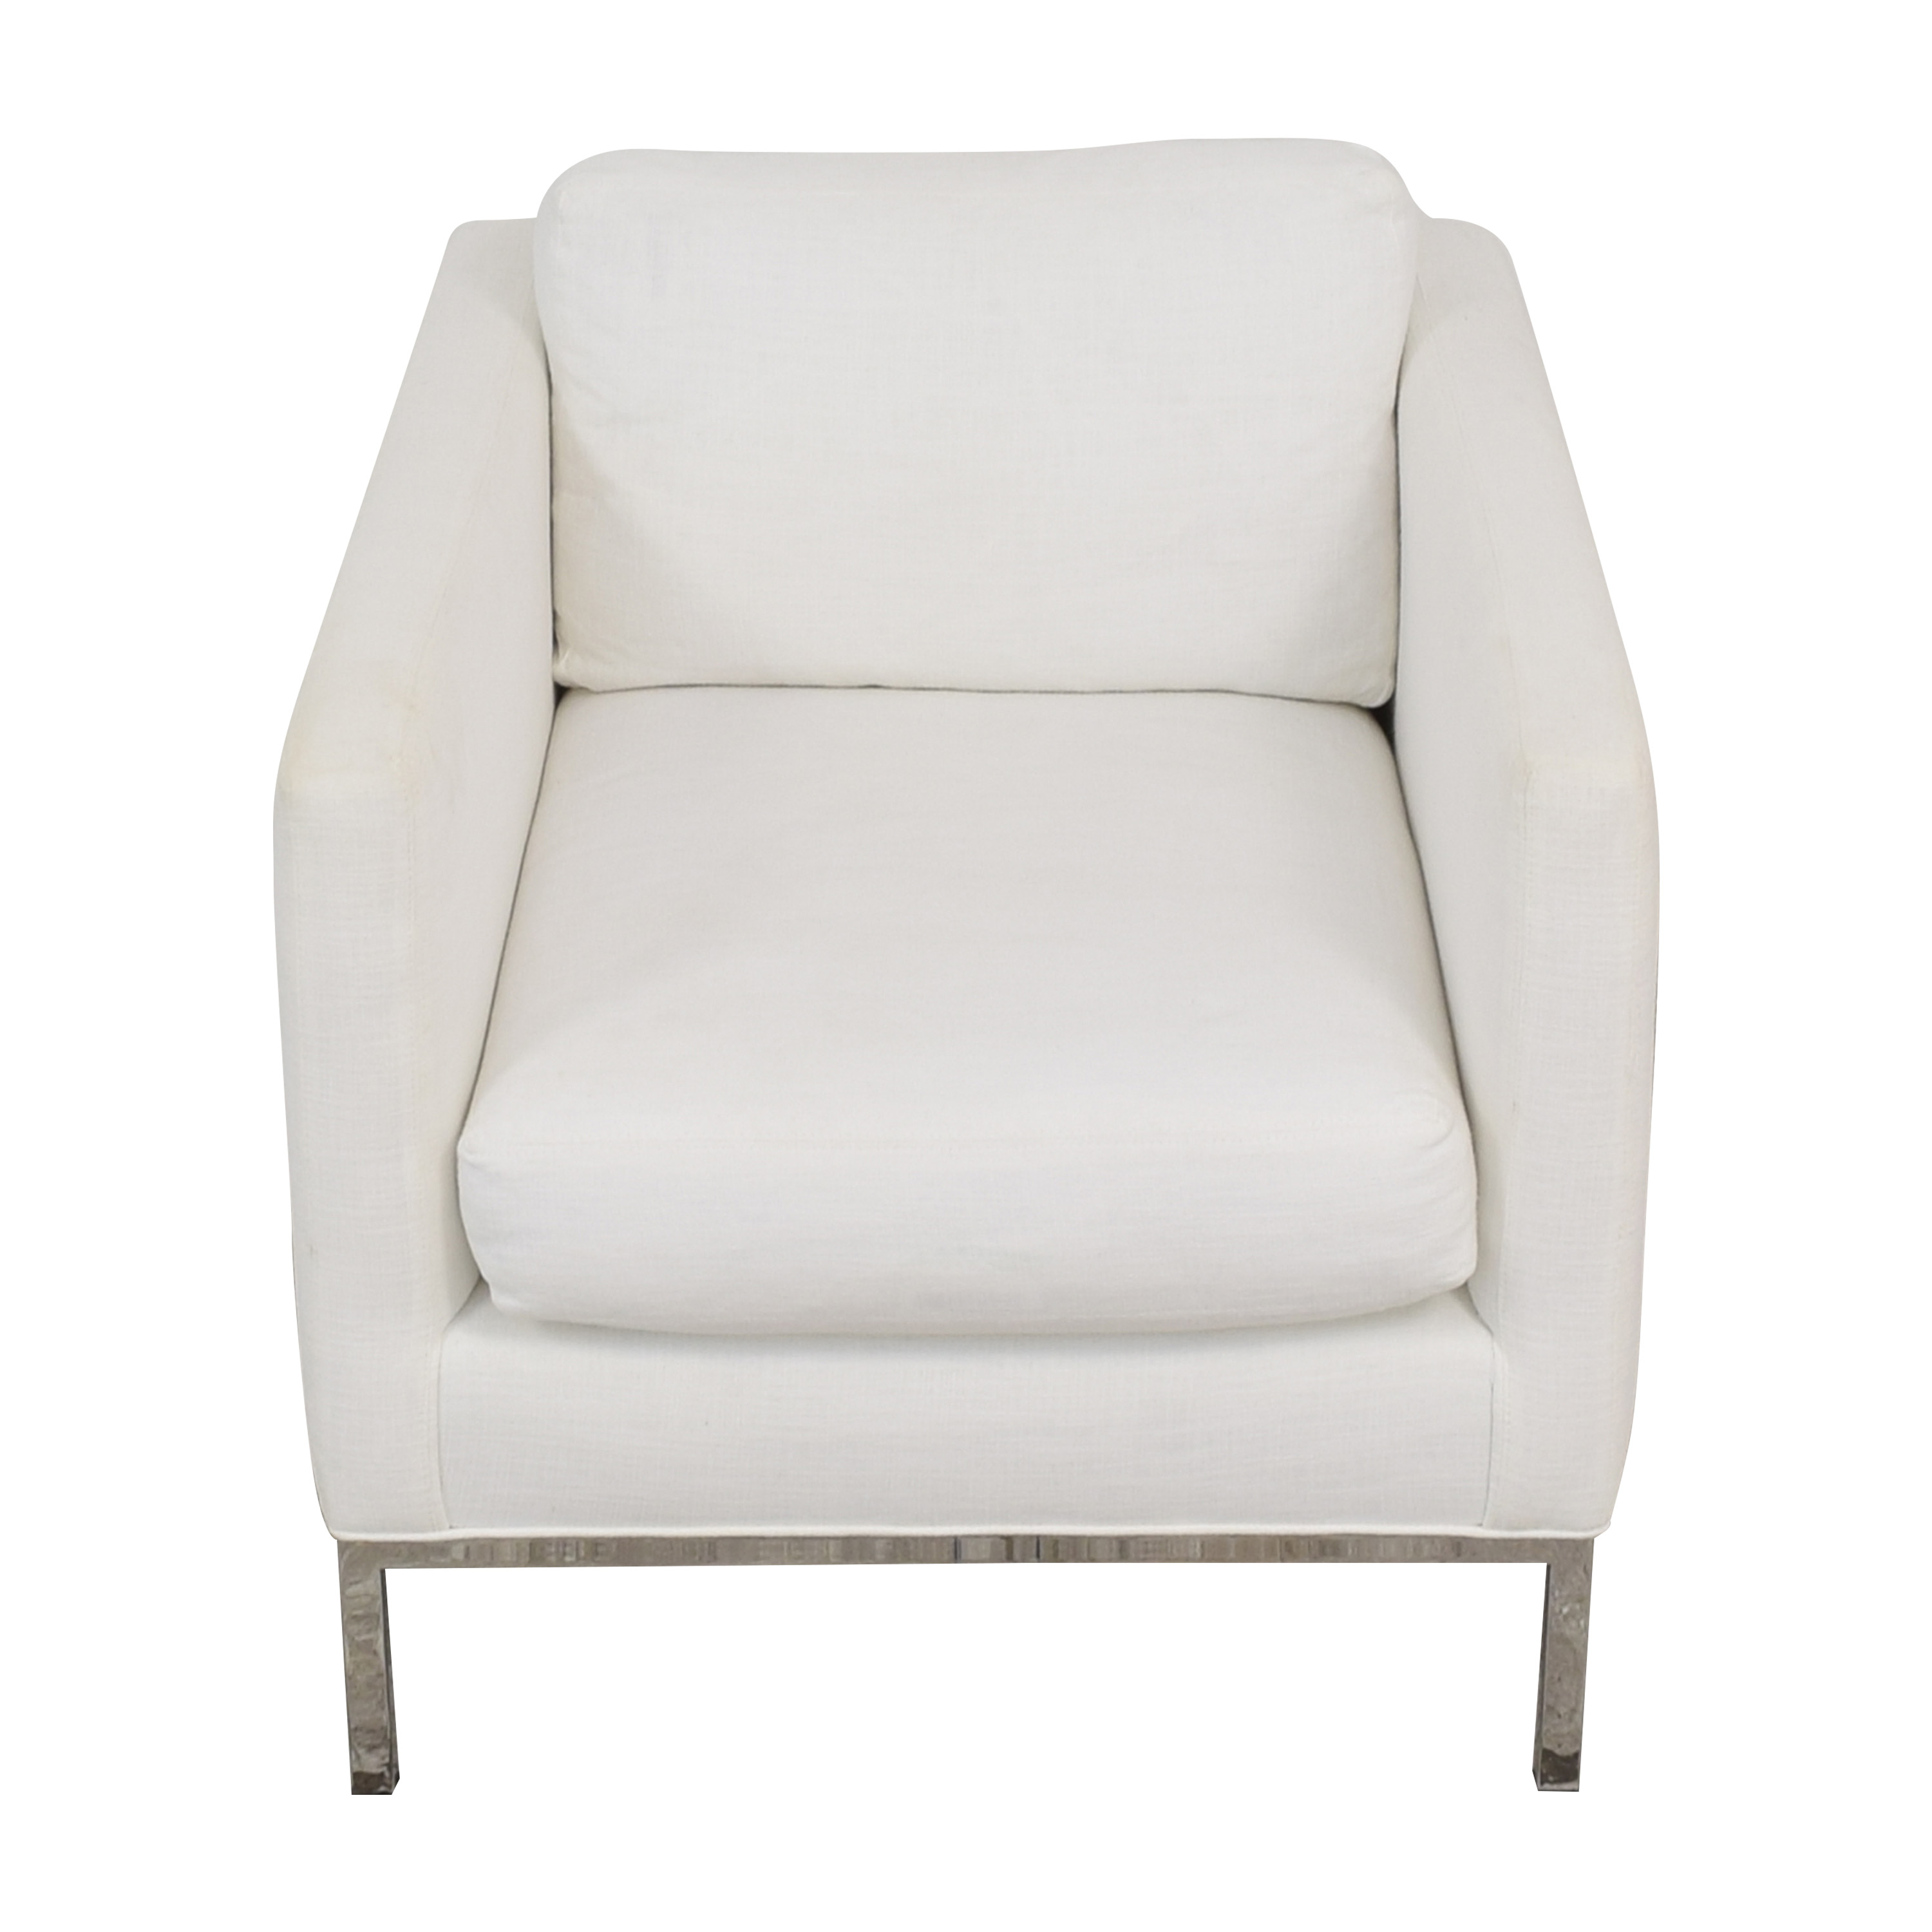 Lee Industries Lee Industries Modern Club Chair discount